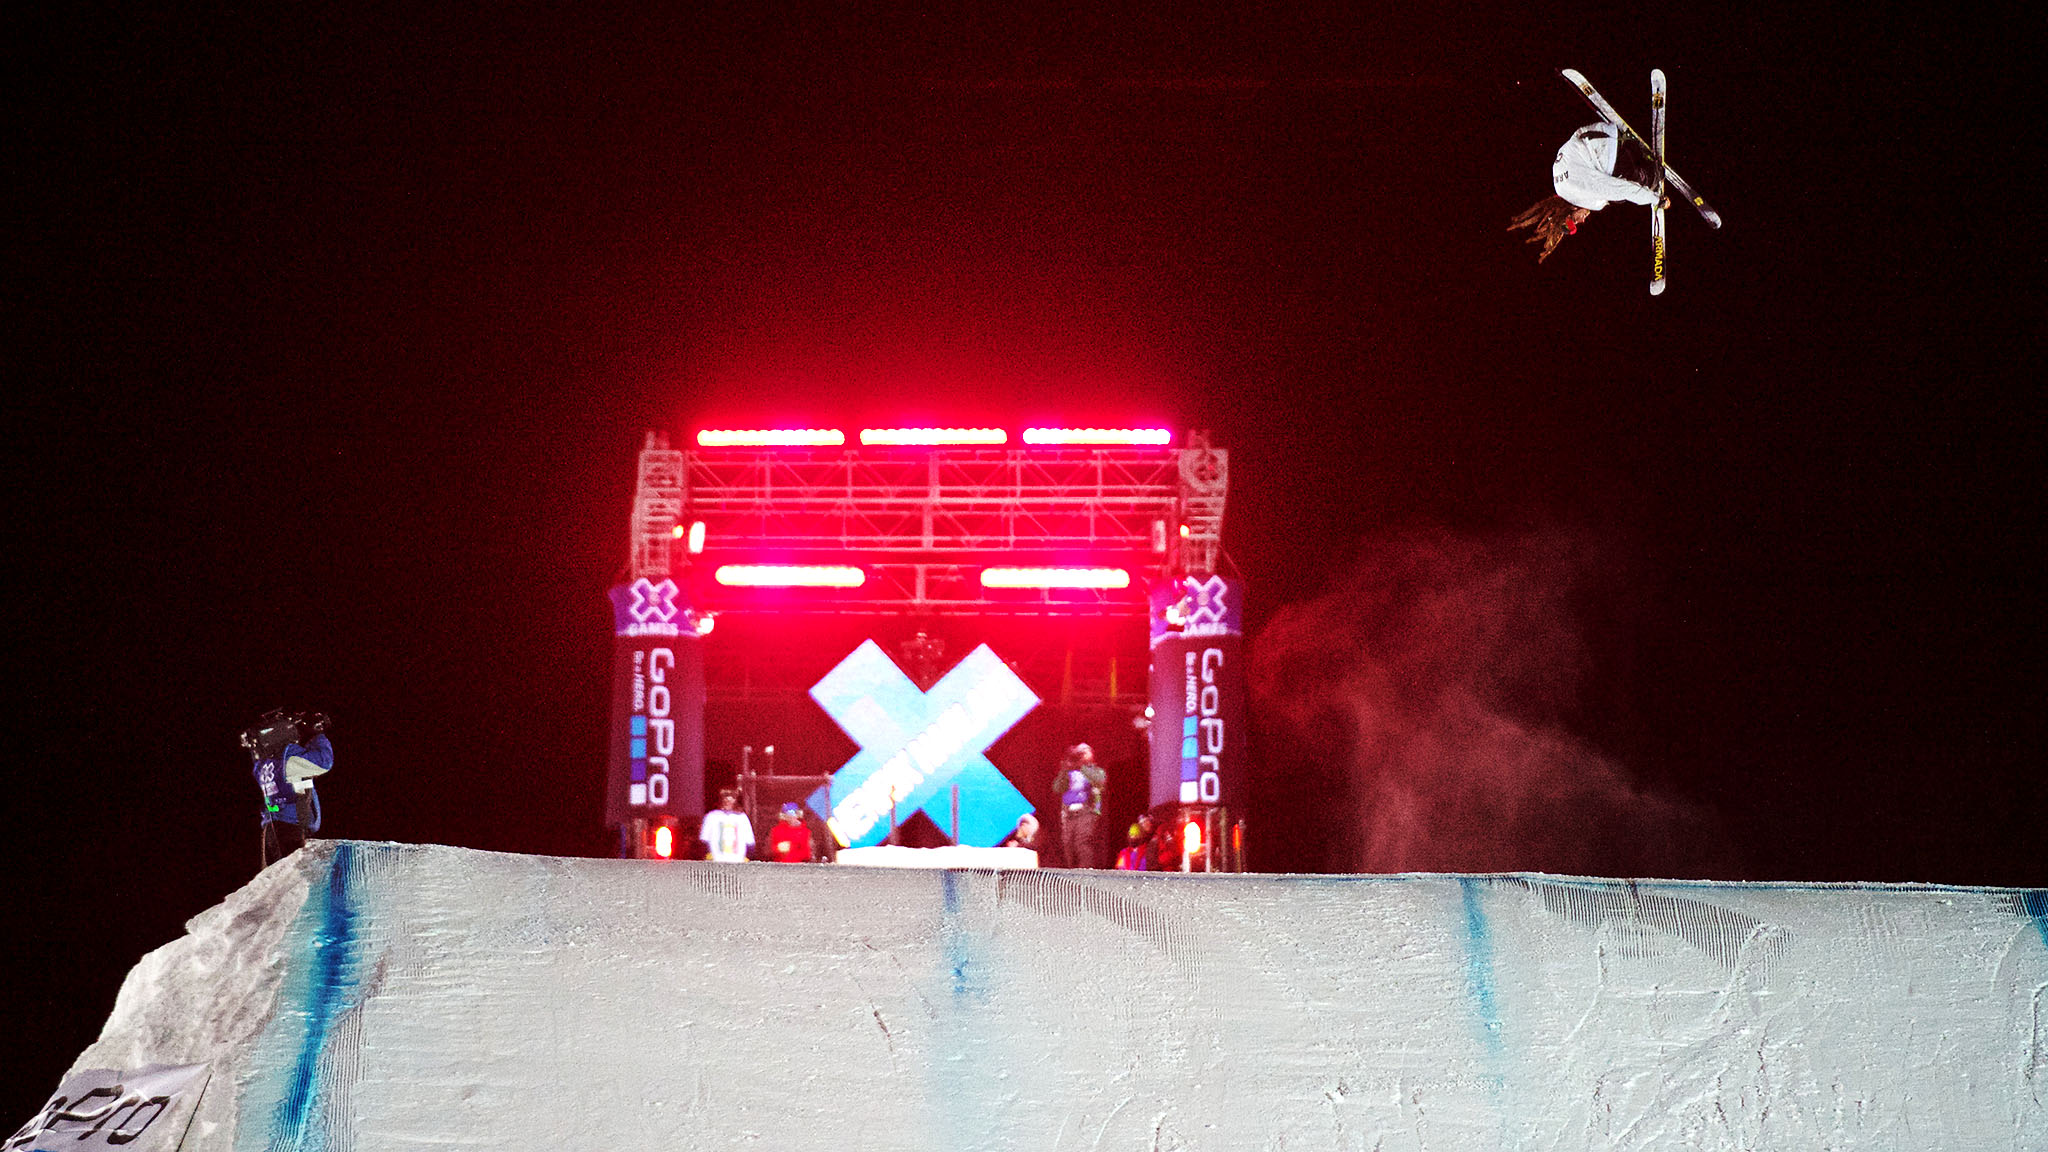 I love the adrenaline you get from contests, says Ski Big Air competitor Henrik Harlaut.